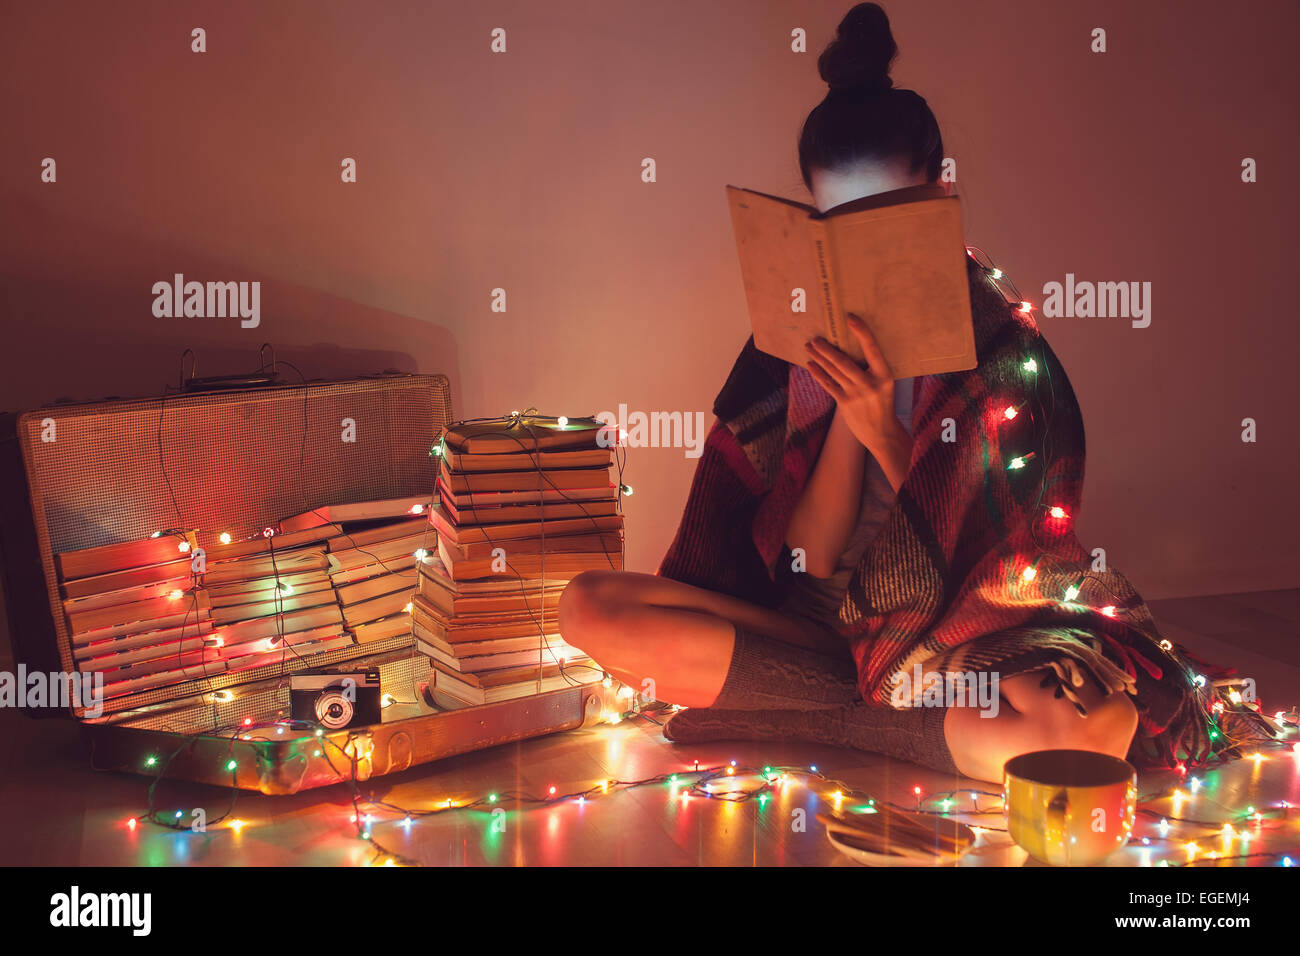 girl reading a book under blanket at home in cold weather - Stock Image